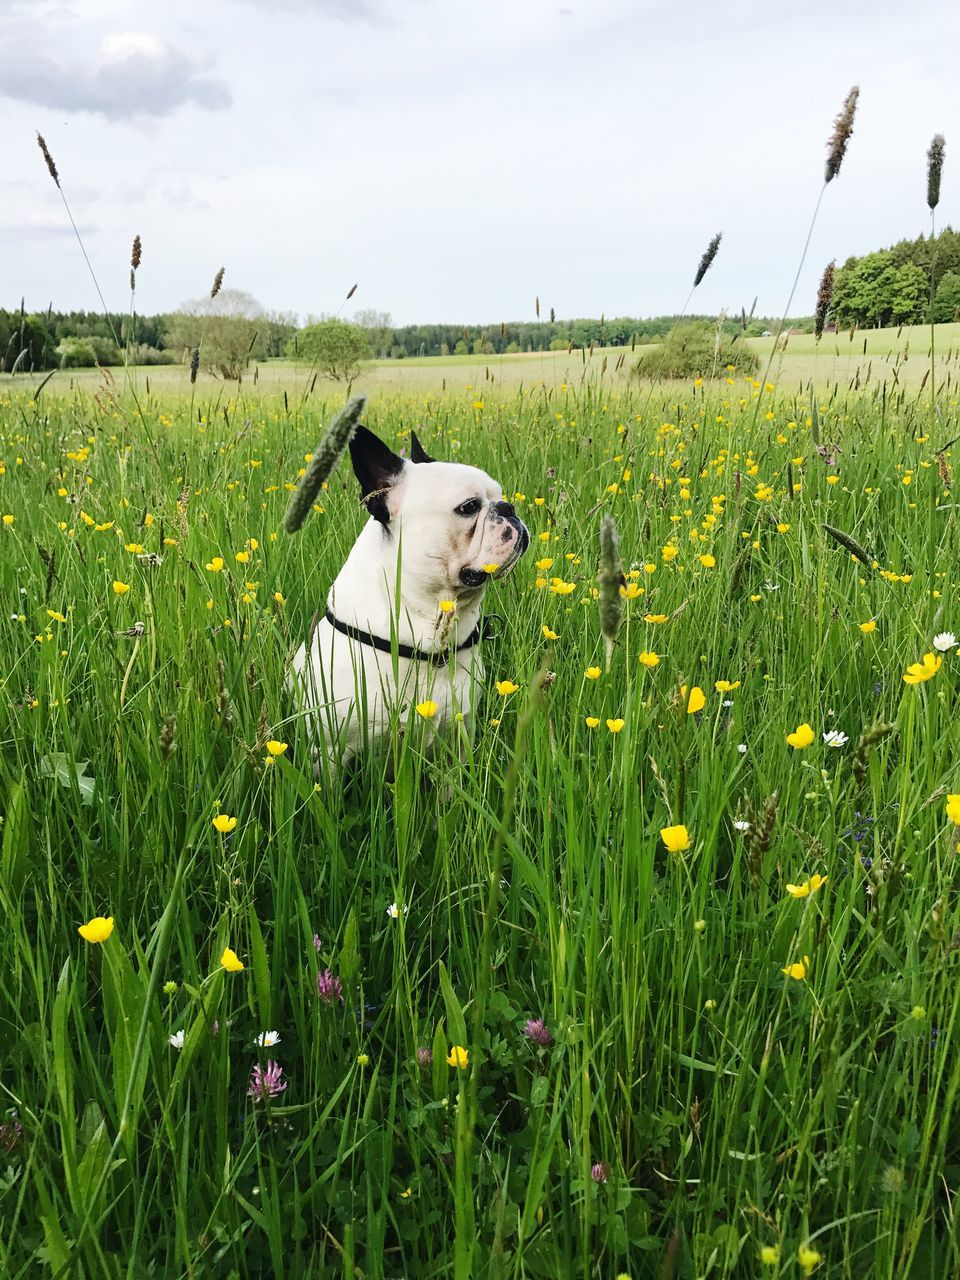 domestic animals, pets, one animal, dog, animal themes, mammal, growth, field, green color, grass, nature, day, sky, outdoors, flower, no people, cloud - sky, plant, beauty in nature